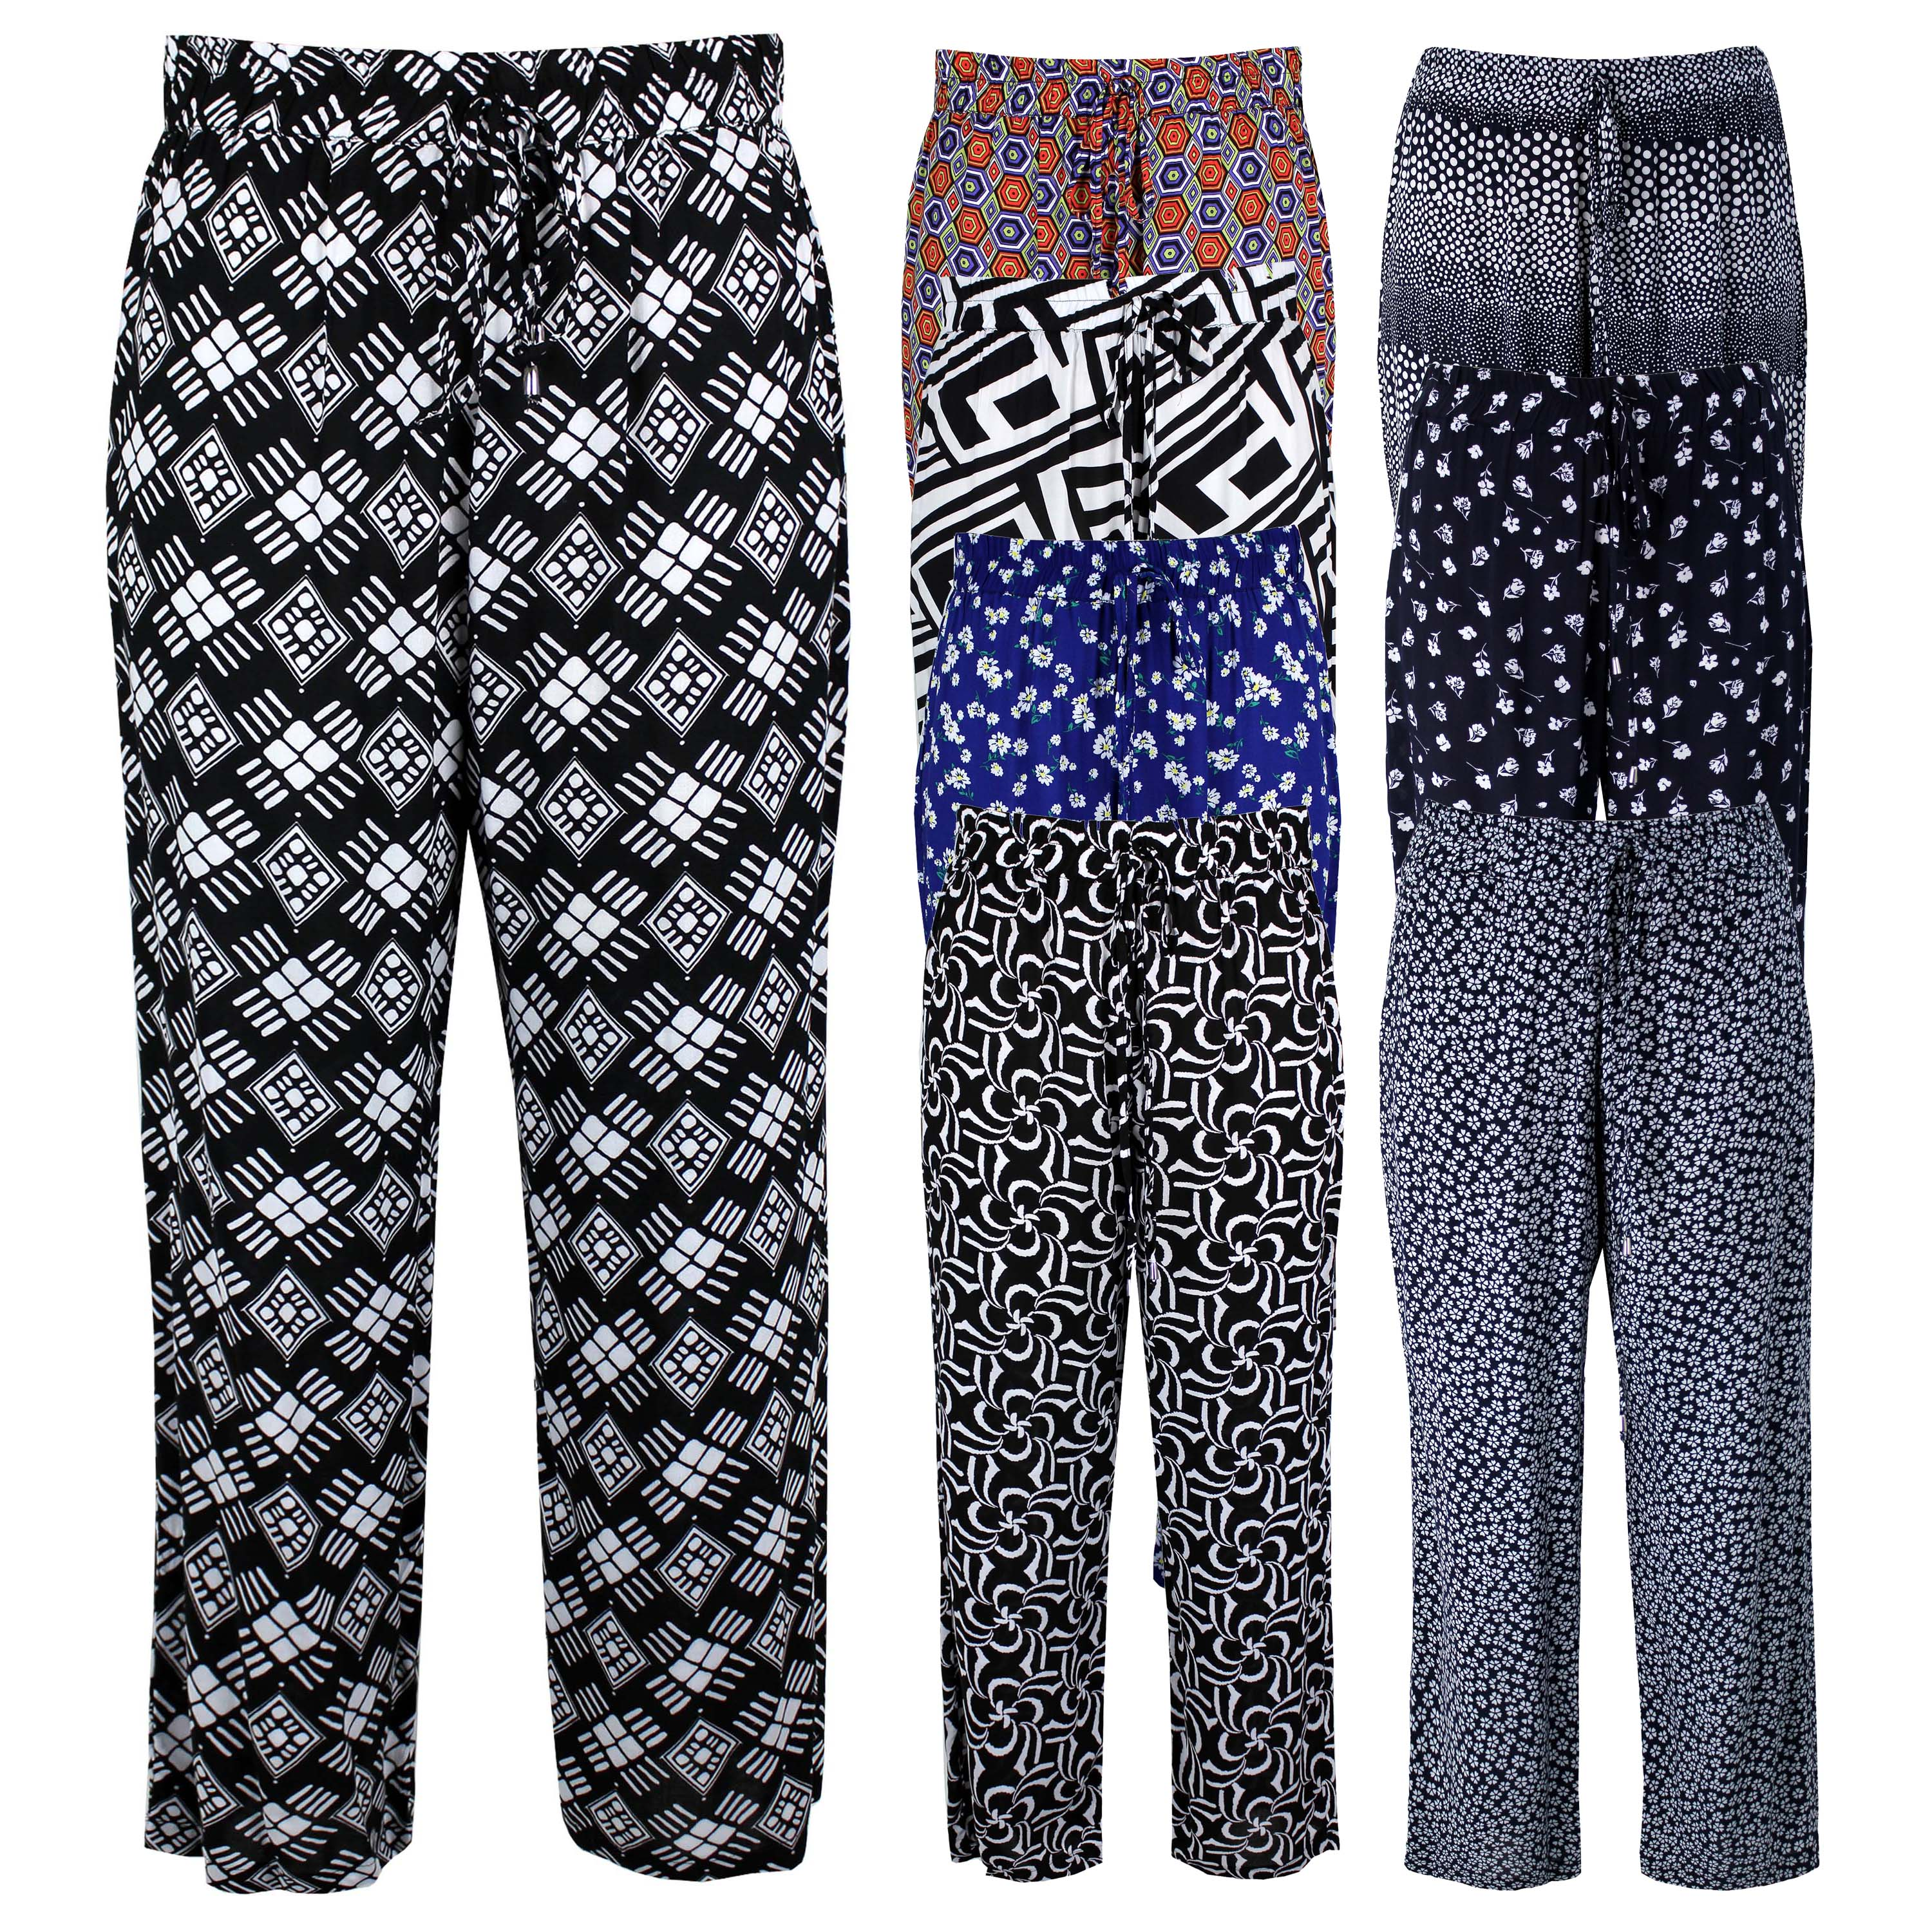 Wonderful  Waist LooseFitting Printed Women39s Exumas Pants  TwinkleDealscom